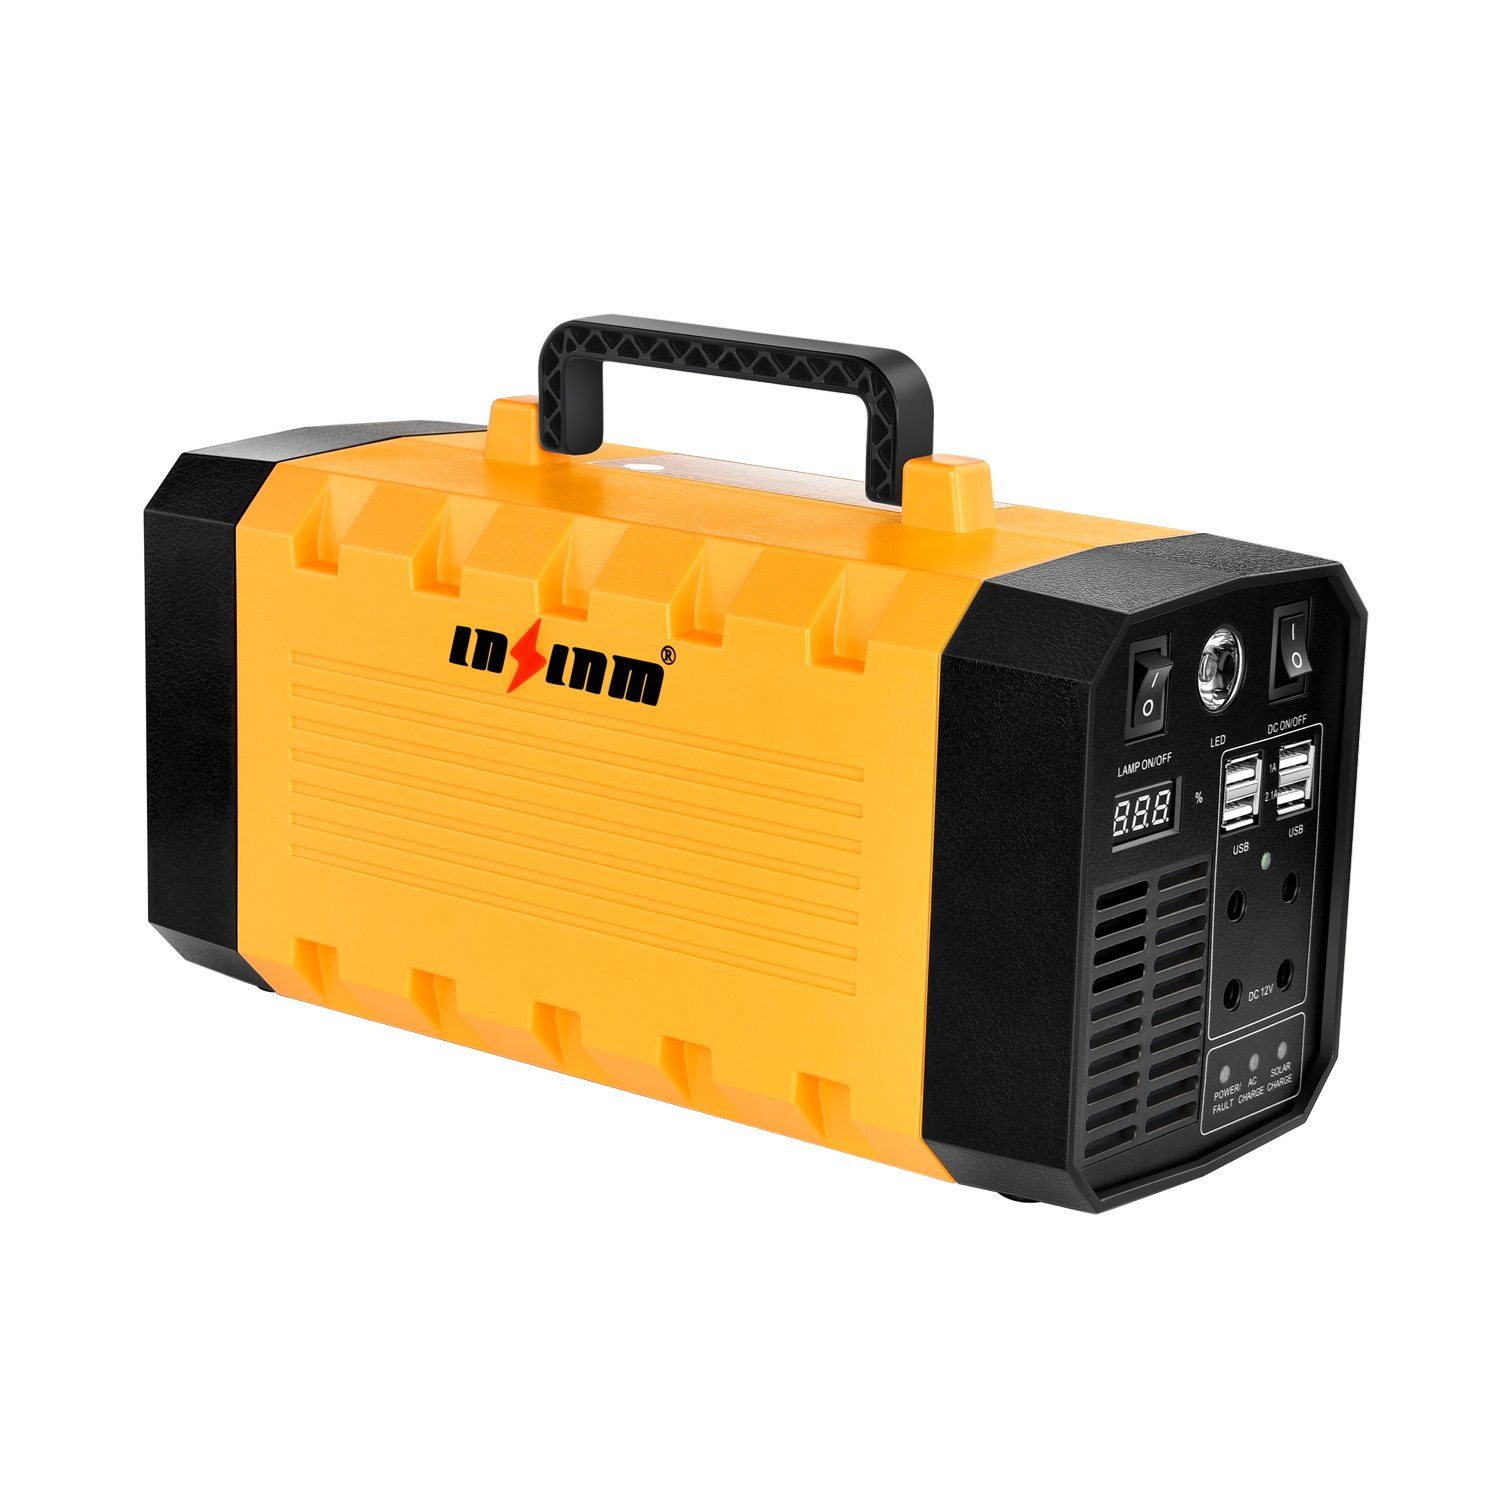 500W Portable Generator Power Inverter, LNSLNM 288Wh/90,000mAh Camping CPAP Battery Backup Home Power Source Charged by Solar Panel/Wall Outlet/Car with Dual 110V AC Outlet, 4 DC 12V Ports, USB Ports by LNSLNM (Image #1)